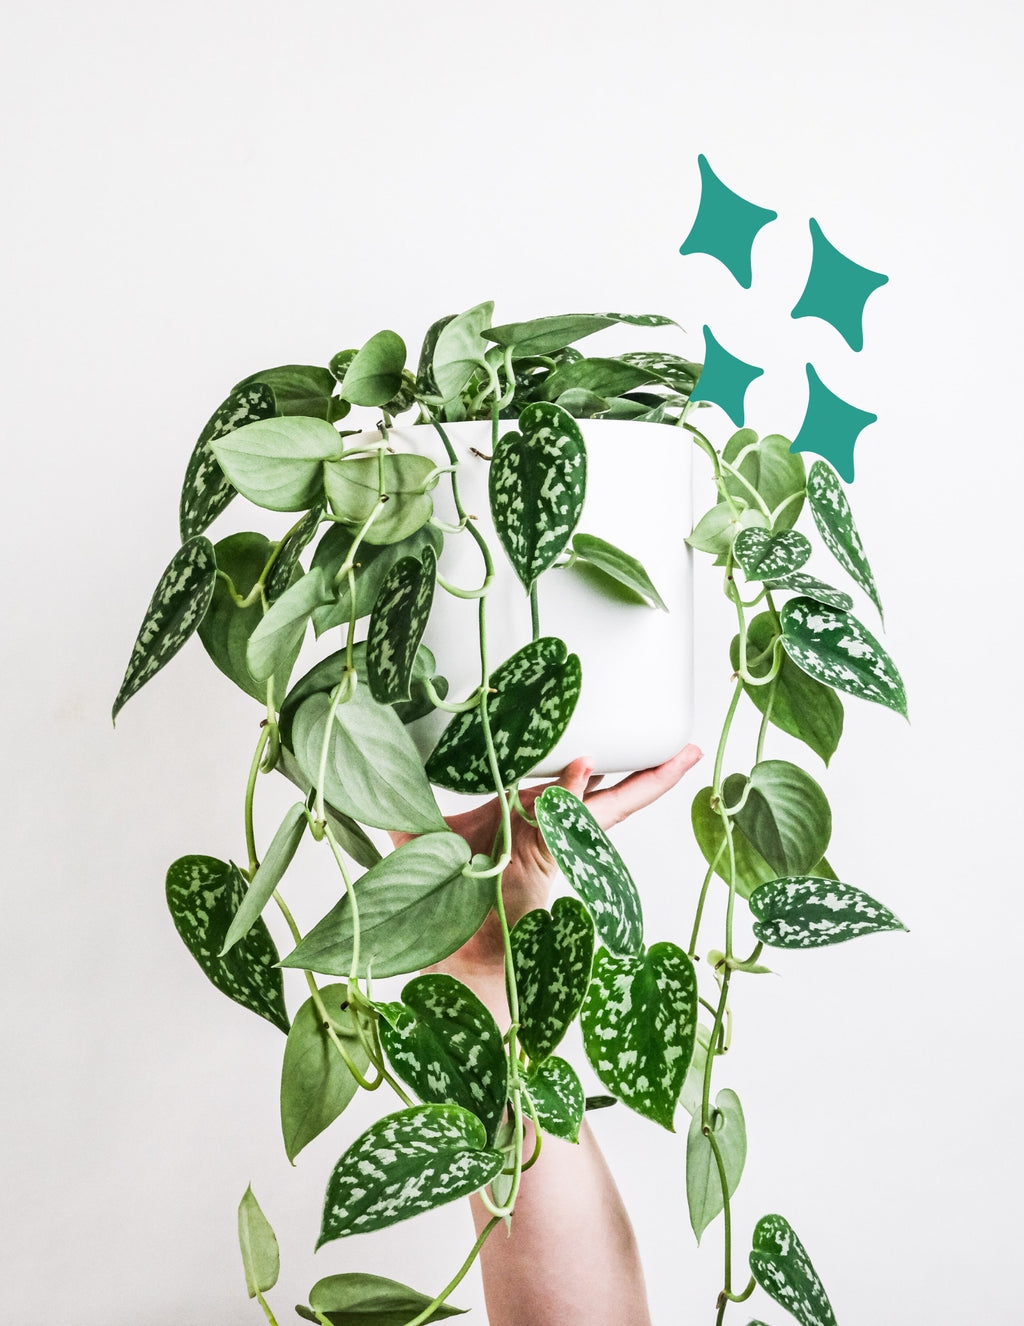 buy satin pothos online, plants for sale online, devils ivy for sale, buy houseplants online, buy pothos